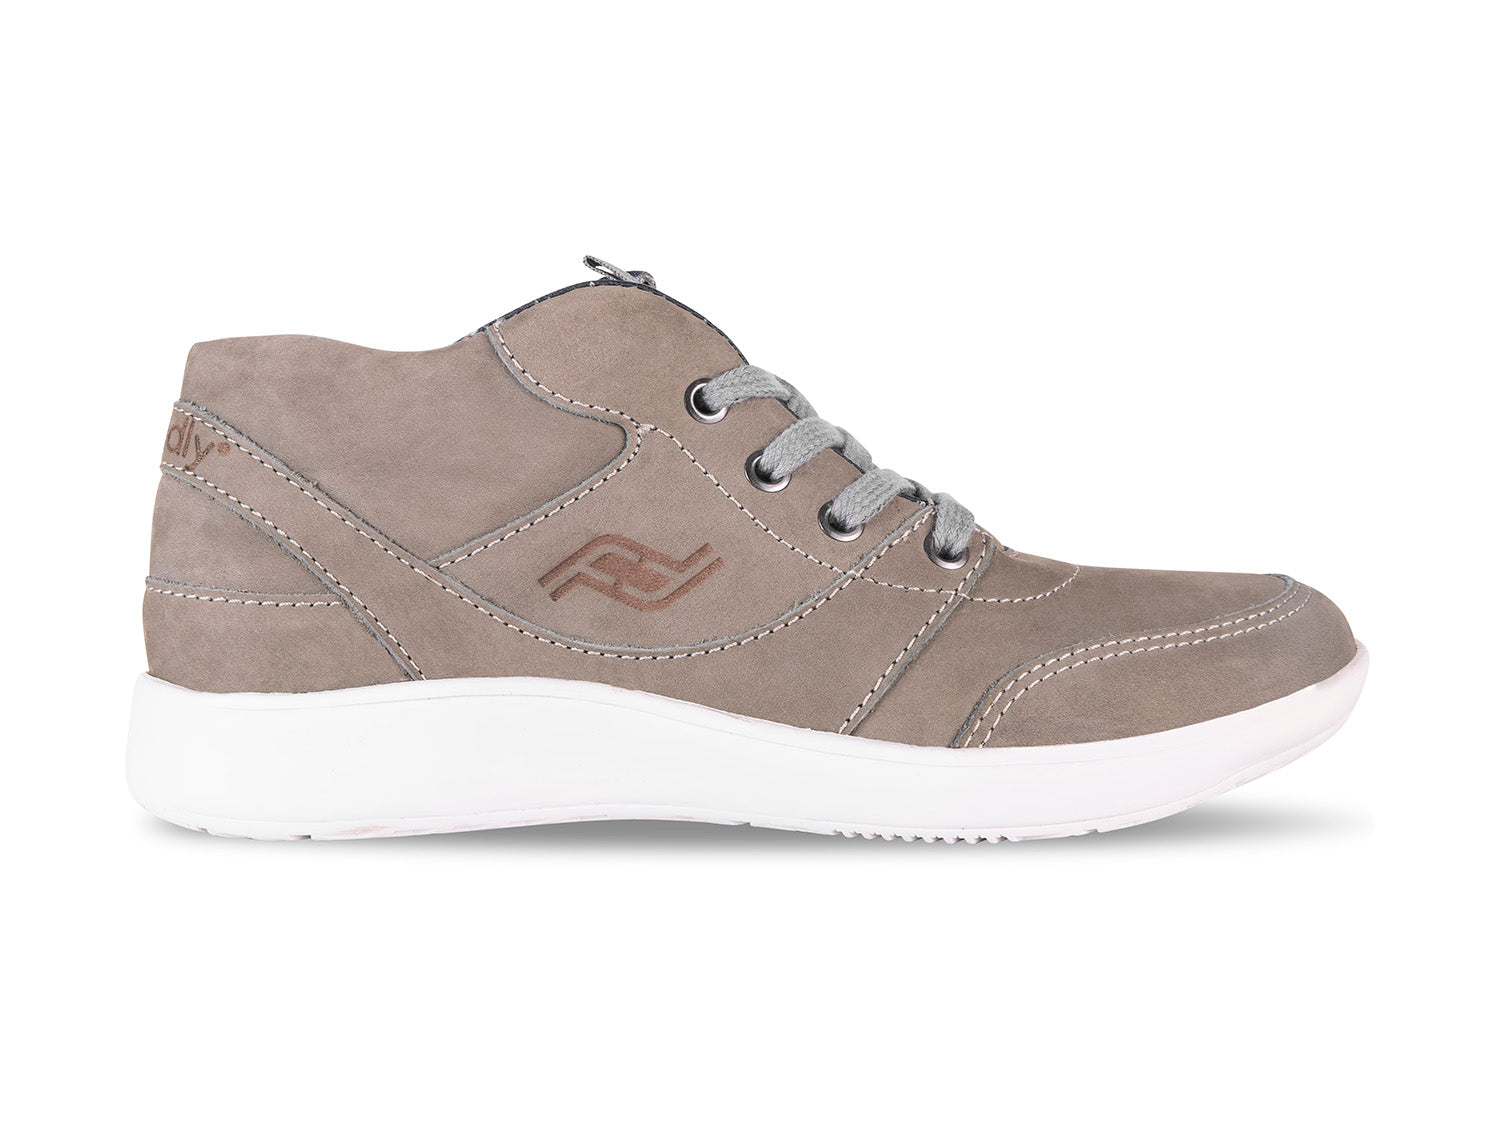 Women's Medimoto Taupe Suede Shoe